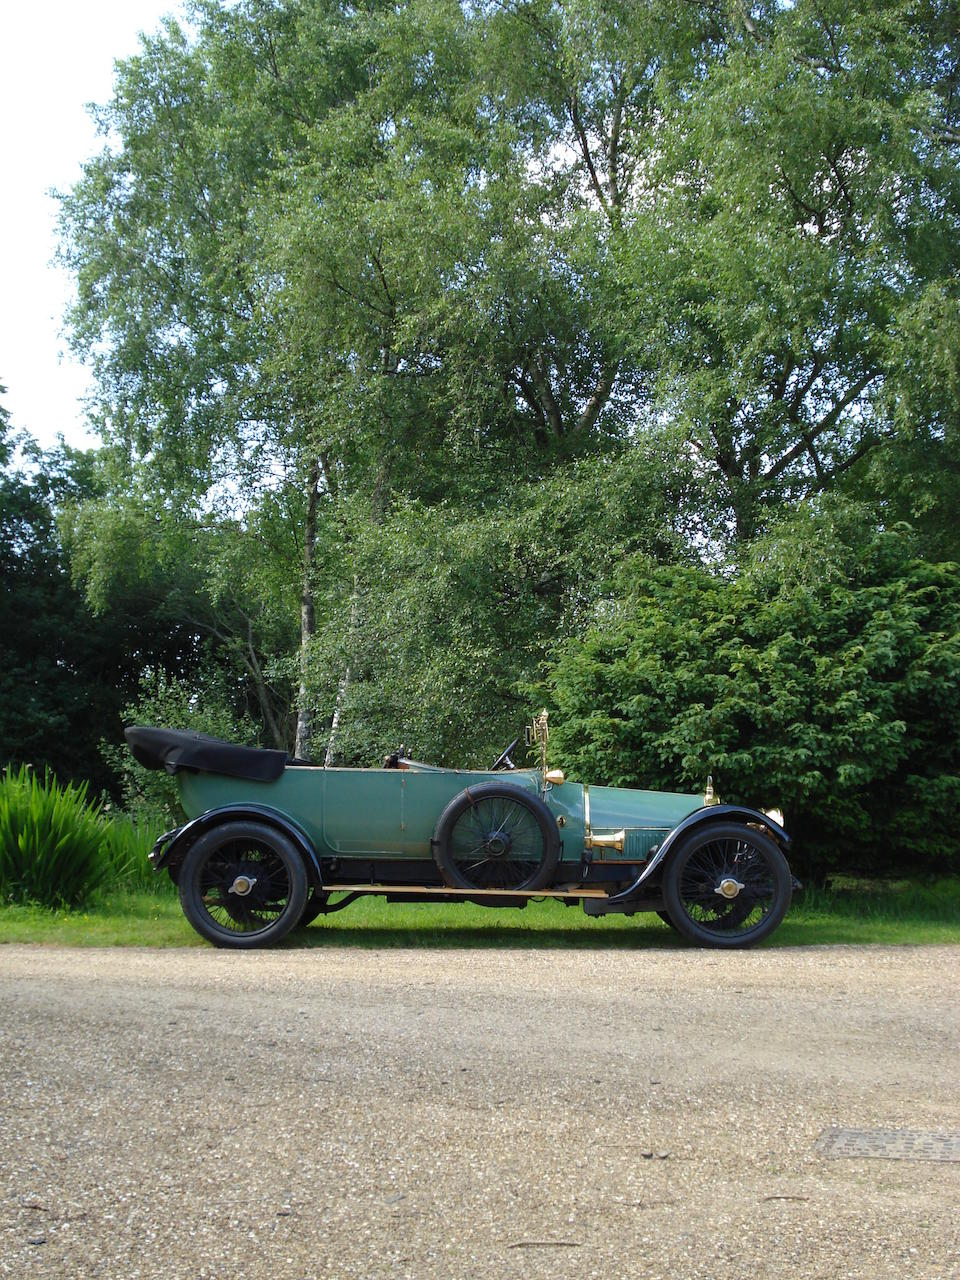 1914 Crossley 20/25hp Royal Flying Corps Model Tourer  Chassis no. 2401 Engine no. 7645